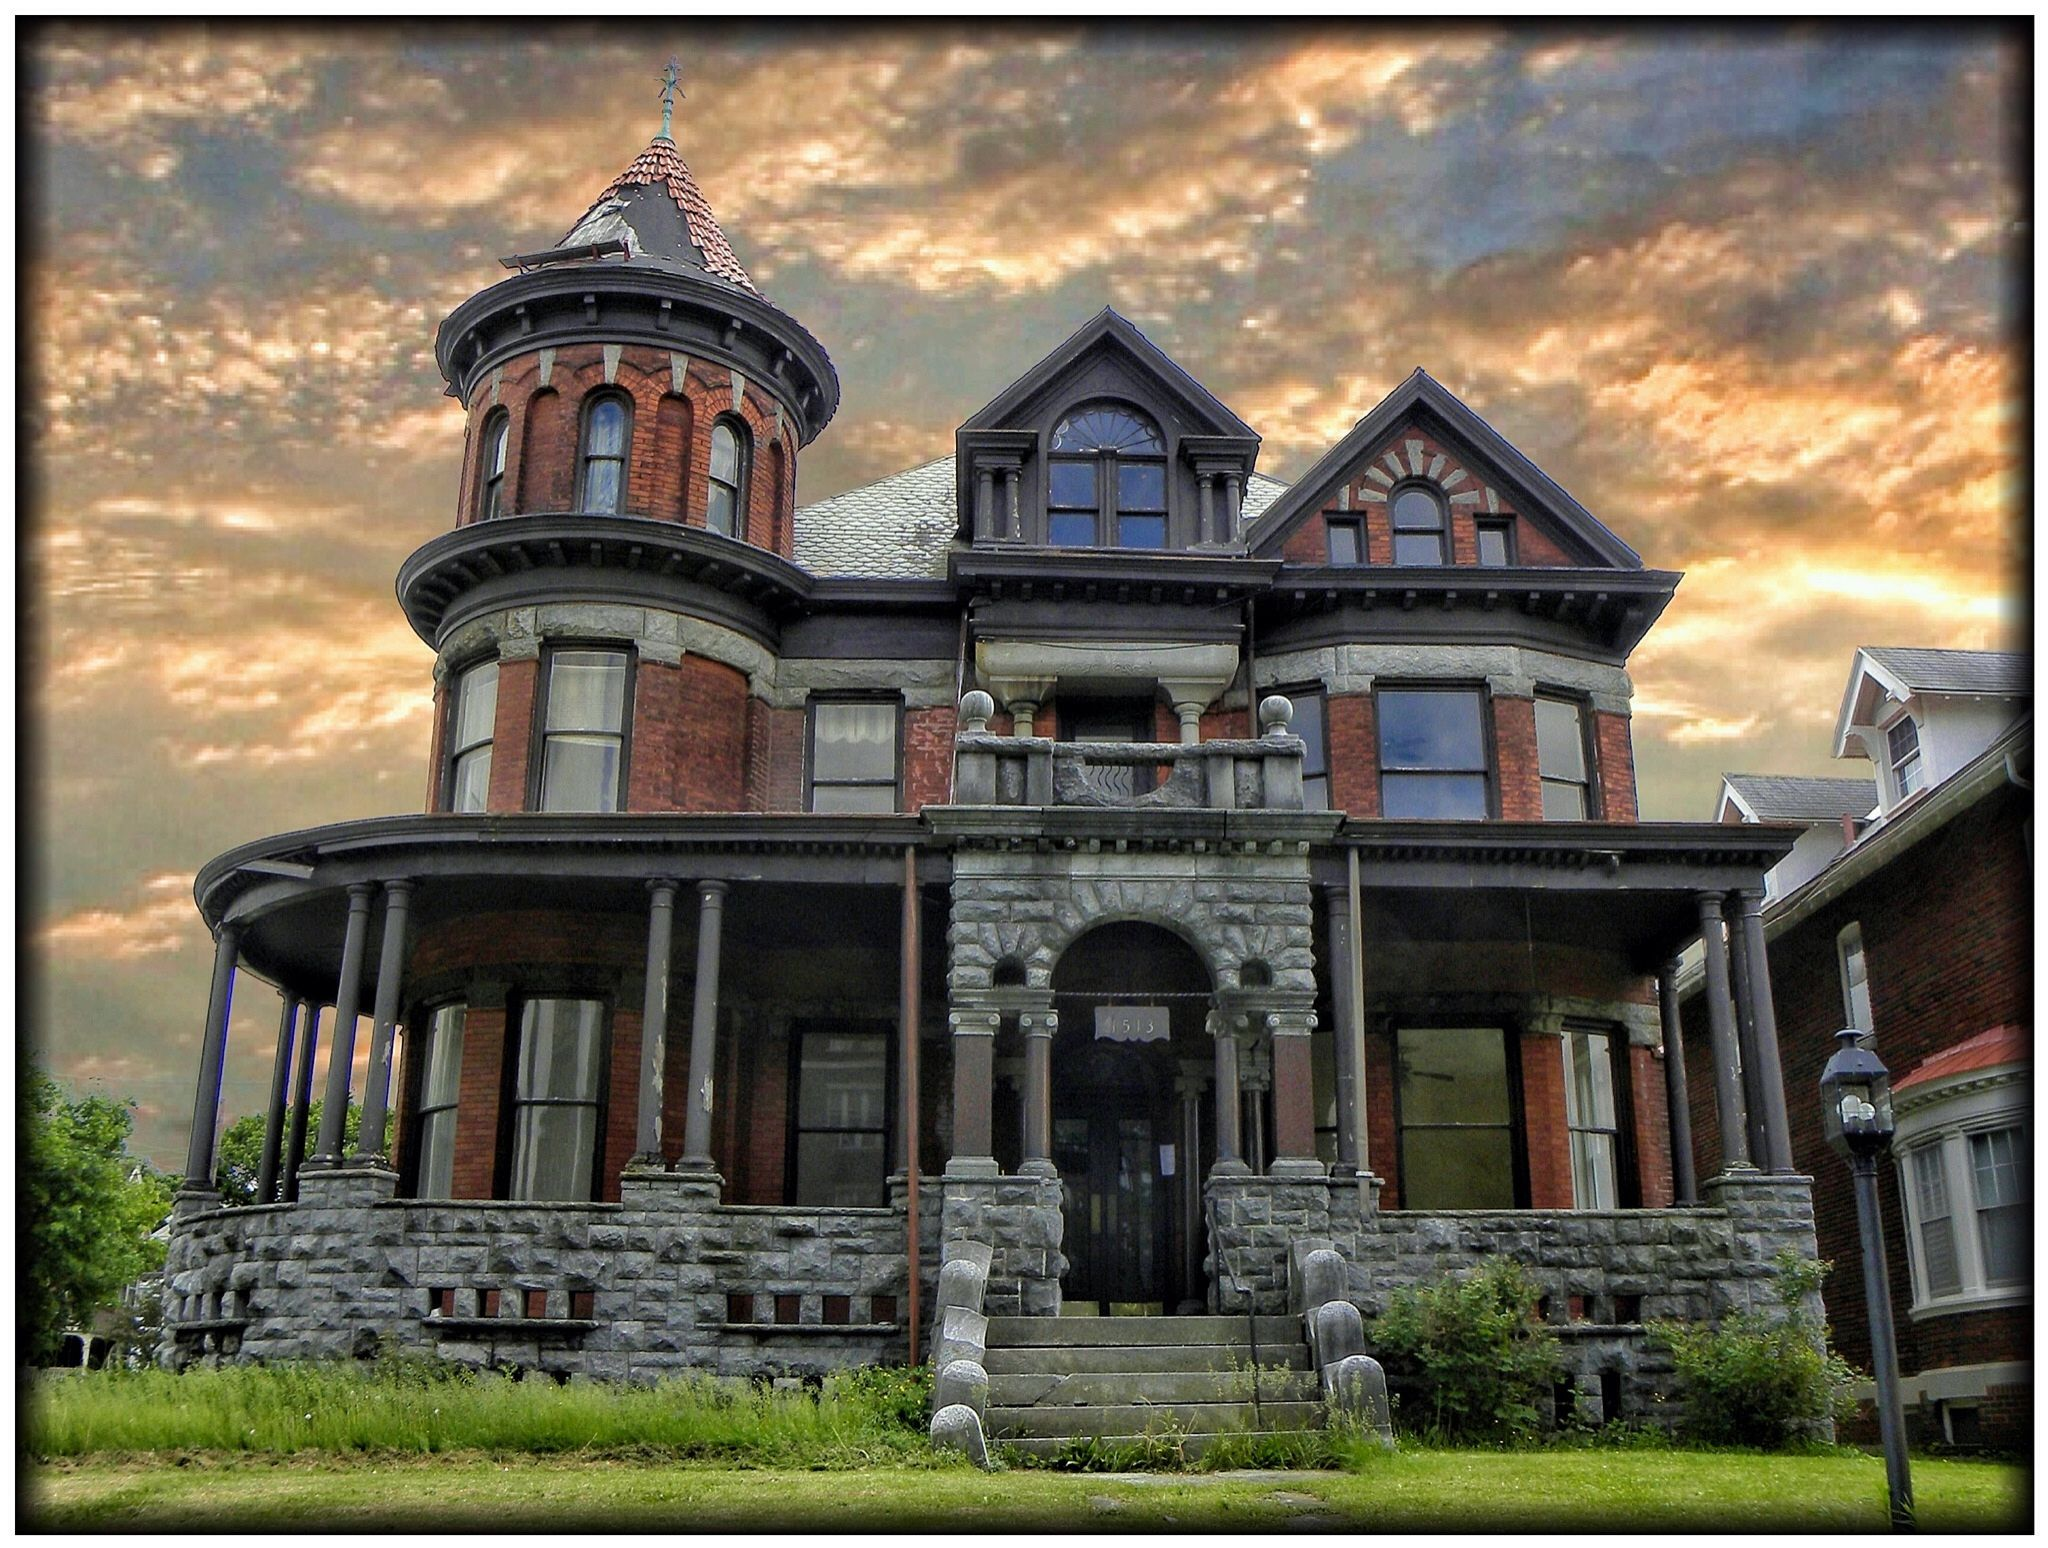 1513 genesee street utica ny abandoned architecture 1890 home architecture